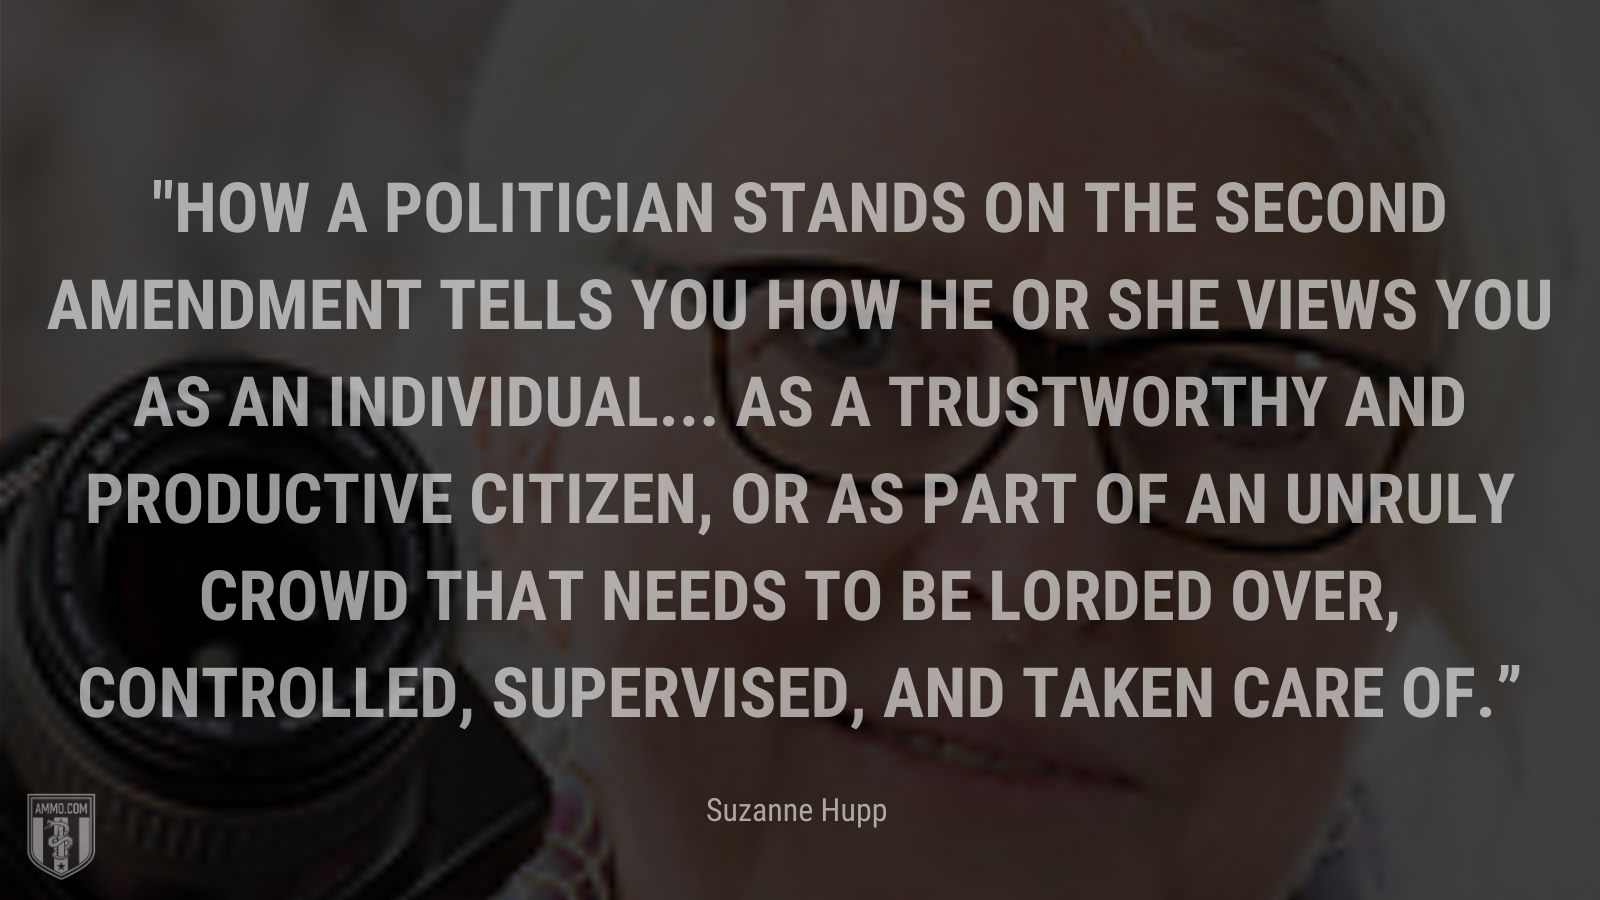 """""""How a politician stands on the Second Amendment tells you how he or she views you as an individual... as a trustworthy and productive citizen, or as part of an unruly crowd that needs to be lorded over, controlled, supervised, and taken care of."""" - Suzanne Hupp"""